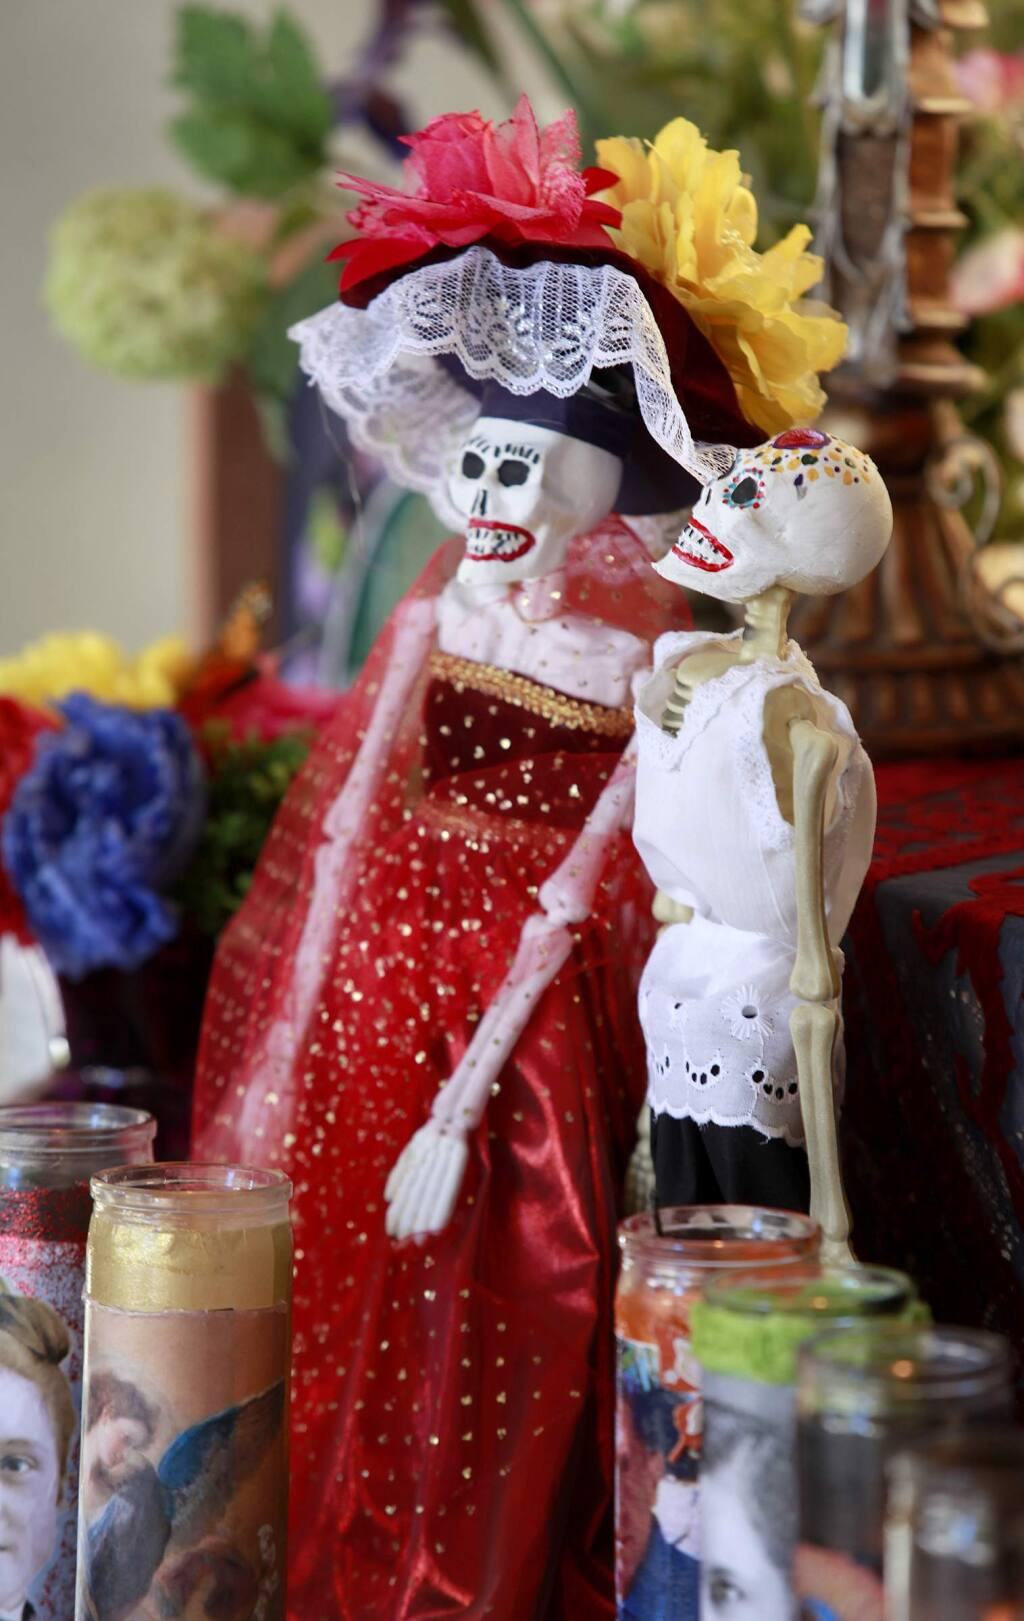 Skeletons decorate an altar during a Dia de los Muertos celebration at Old Courthouse Square in Santa Rosa on Sunday, Nov. 2, 2014. (BETH SCHLANKER/ PD FILE)